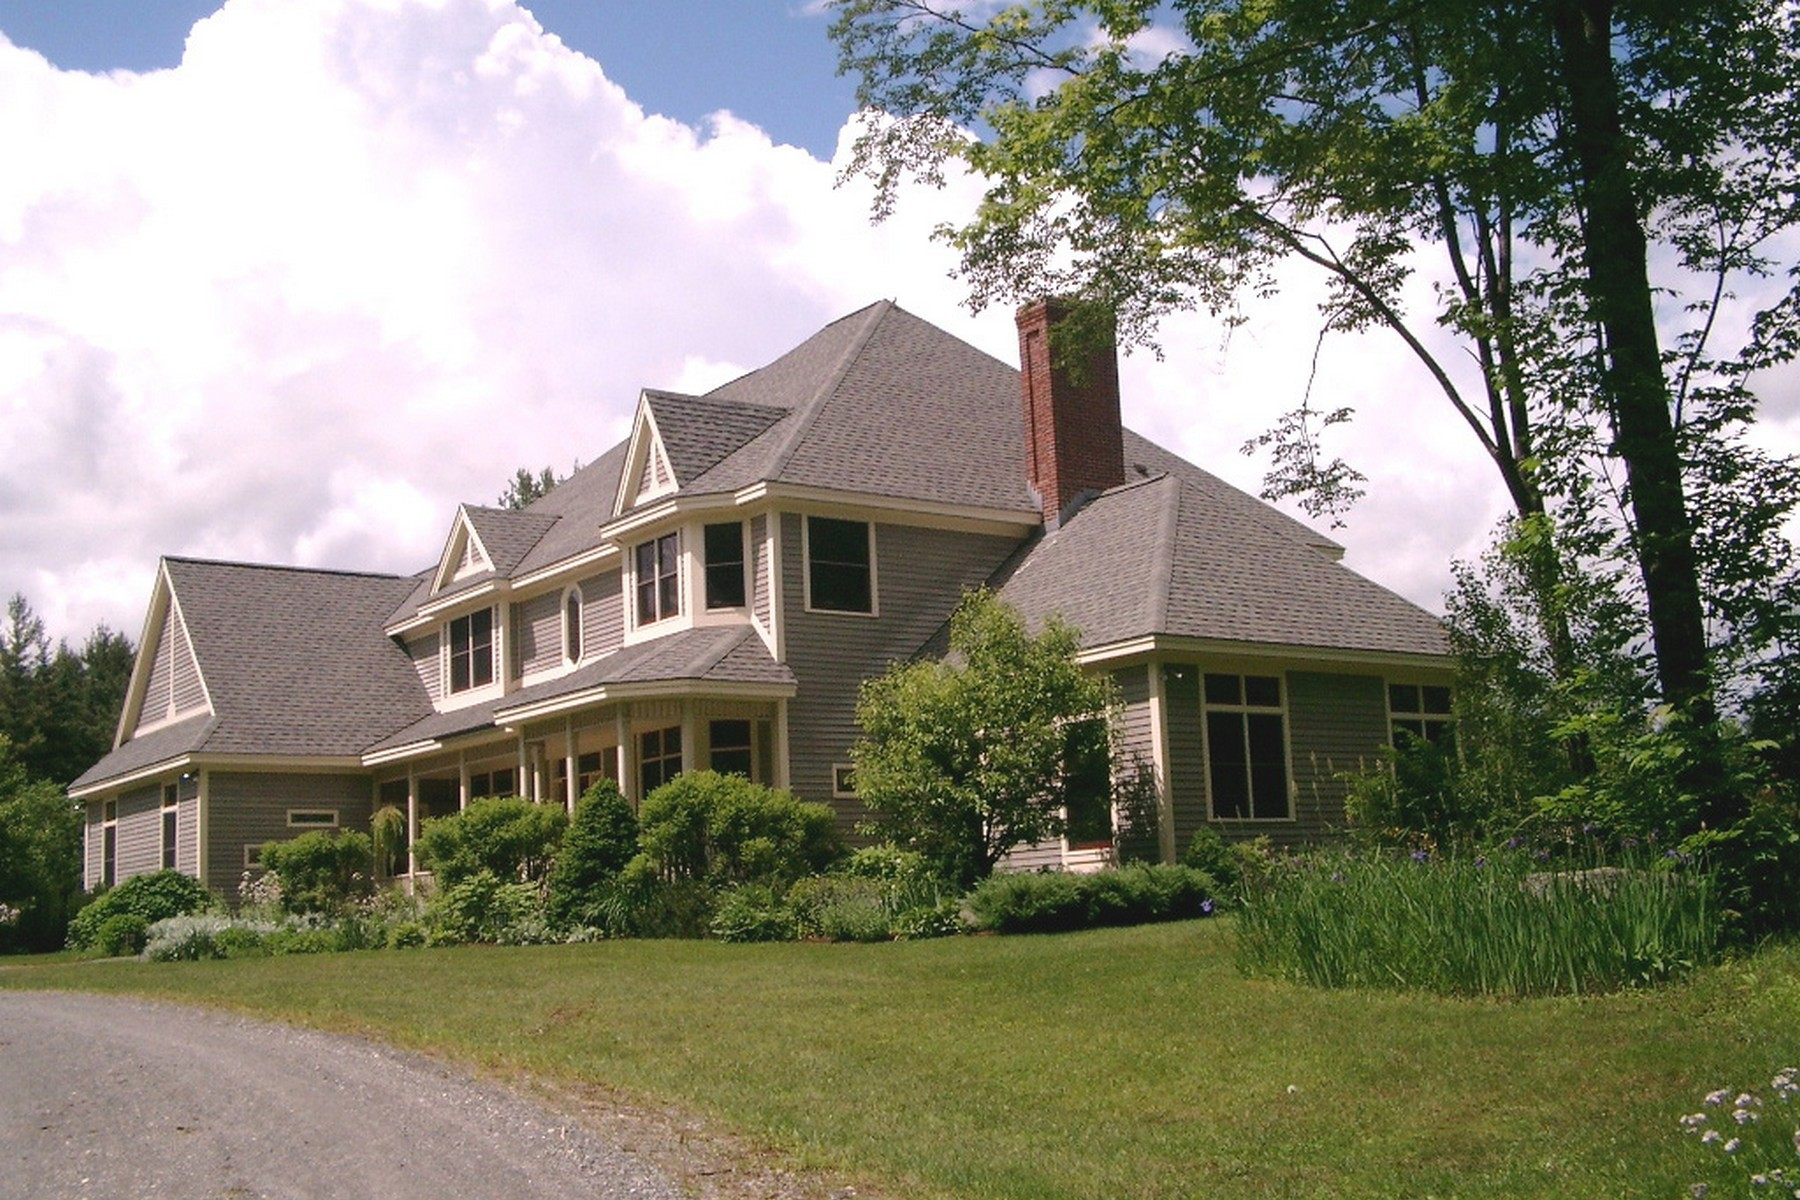 Maison unifamiliale pour l Vente à Privacy with Mountain Views 278 Lawrence Hill Rd Weston, Vermont, 05161 États-Unis